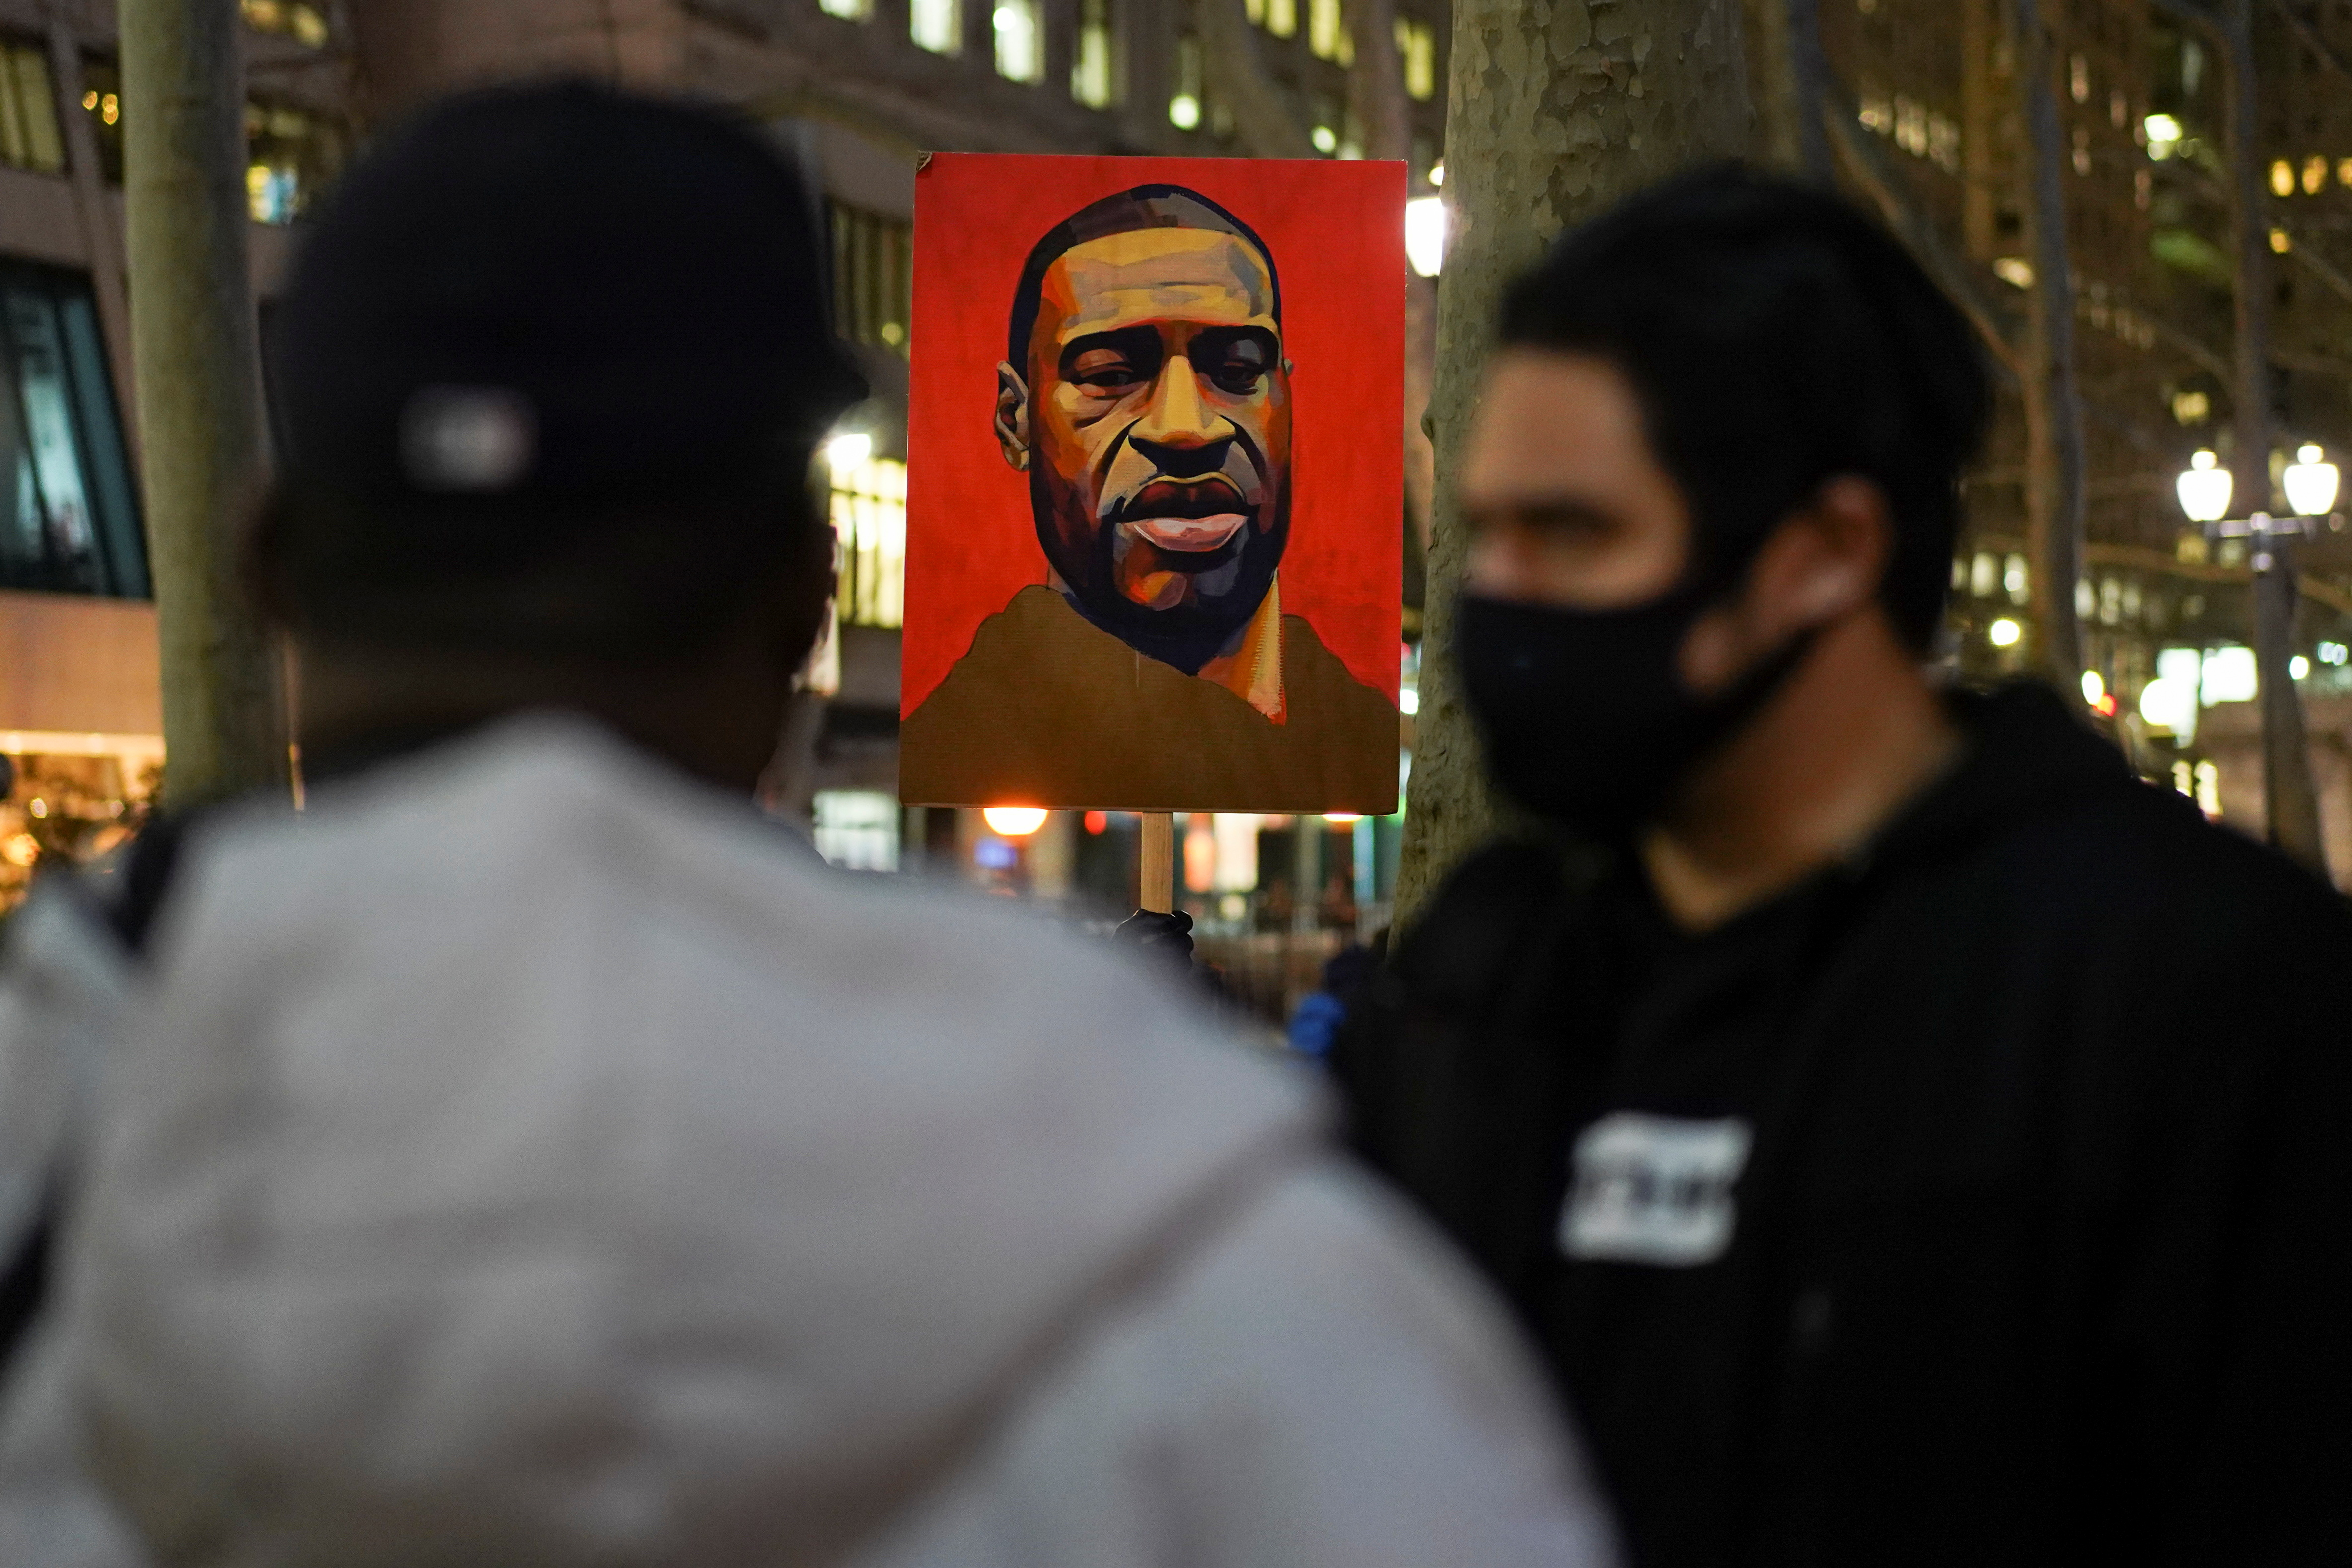 Demonstrators take part in a Justice for George Floyd protest in New York City, New York, U.S. March 8, 2021. REUTERS/David 'Dee' Delgado